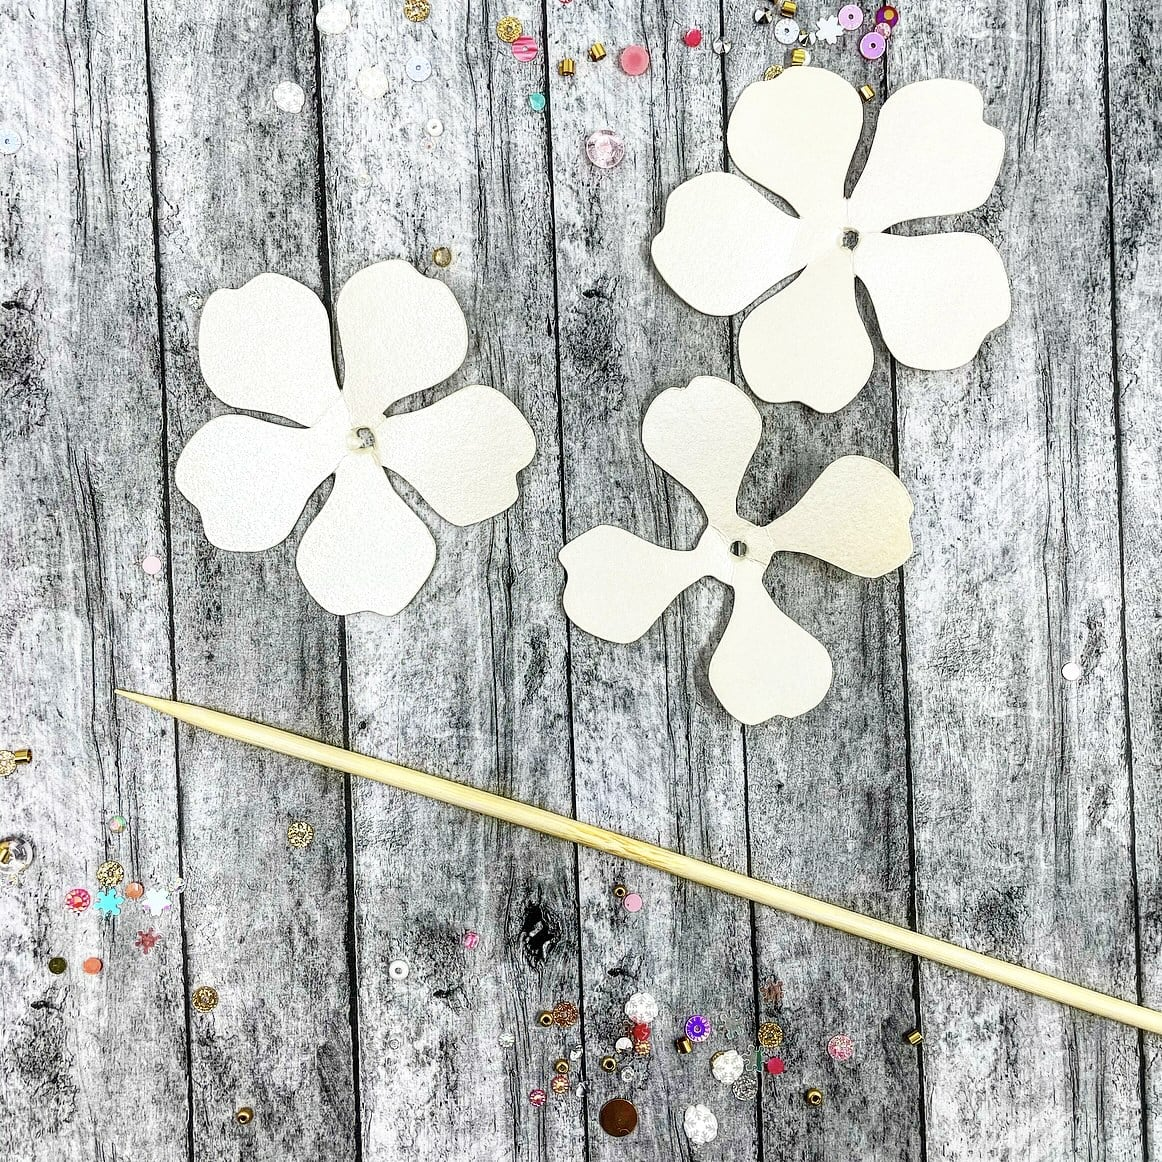 Flower die cuts with wood skewer